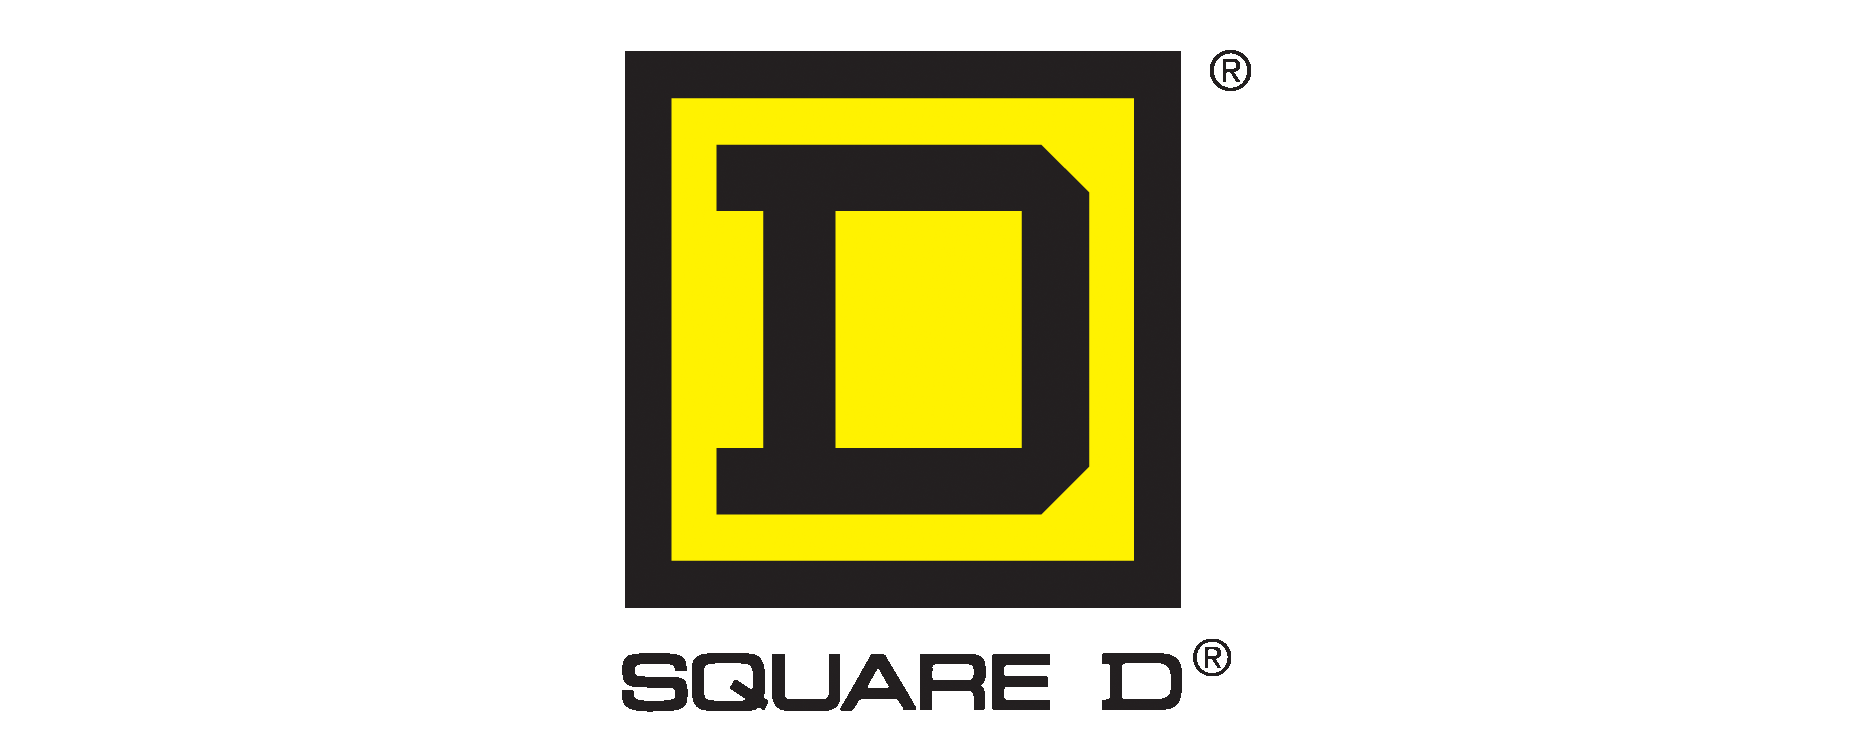 Square-D-Small-Logo